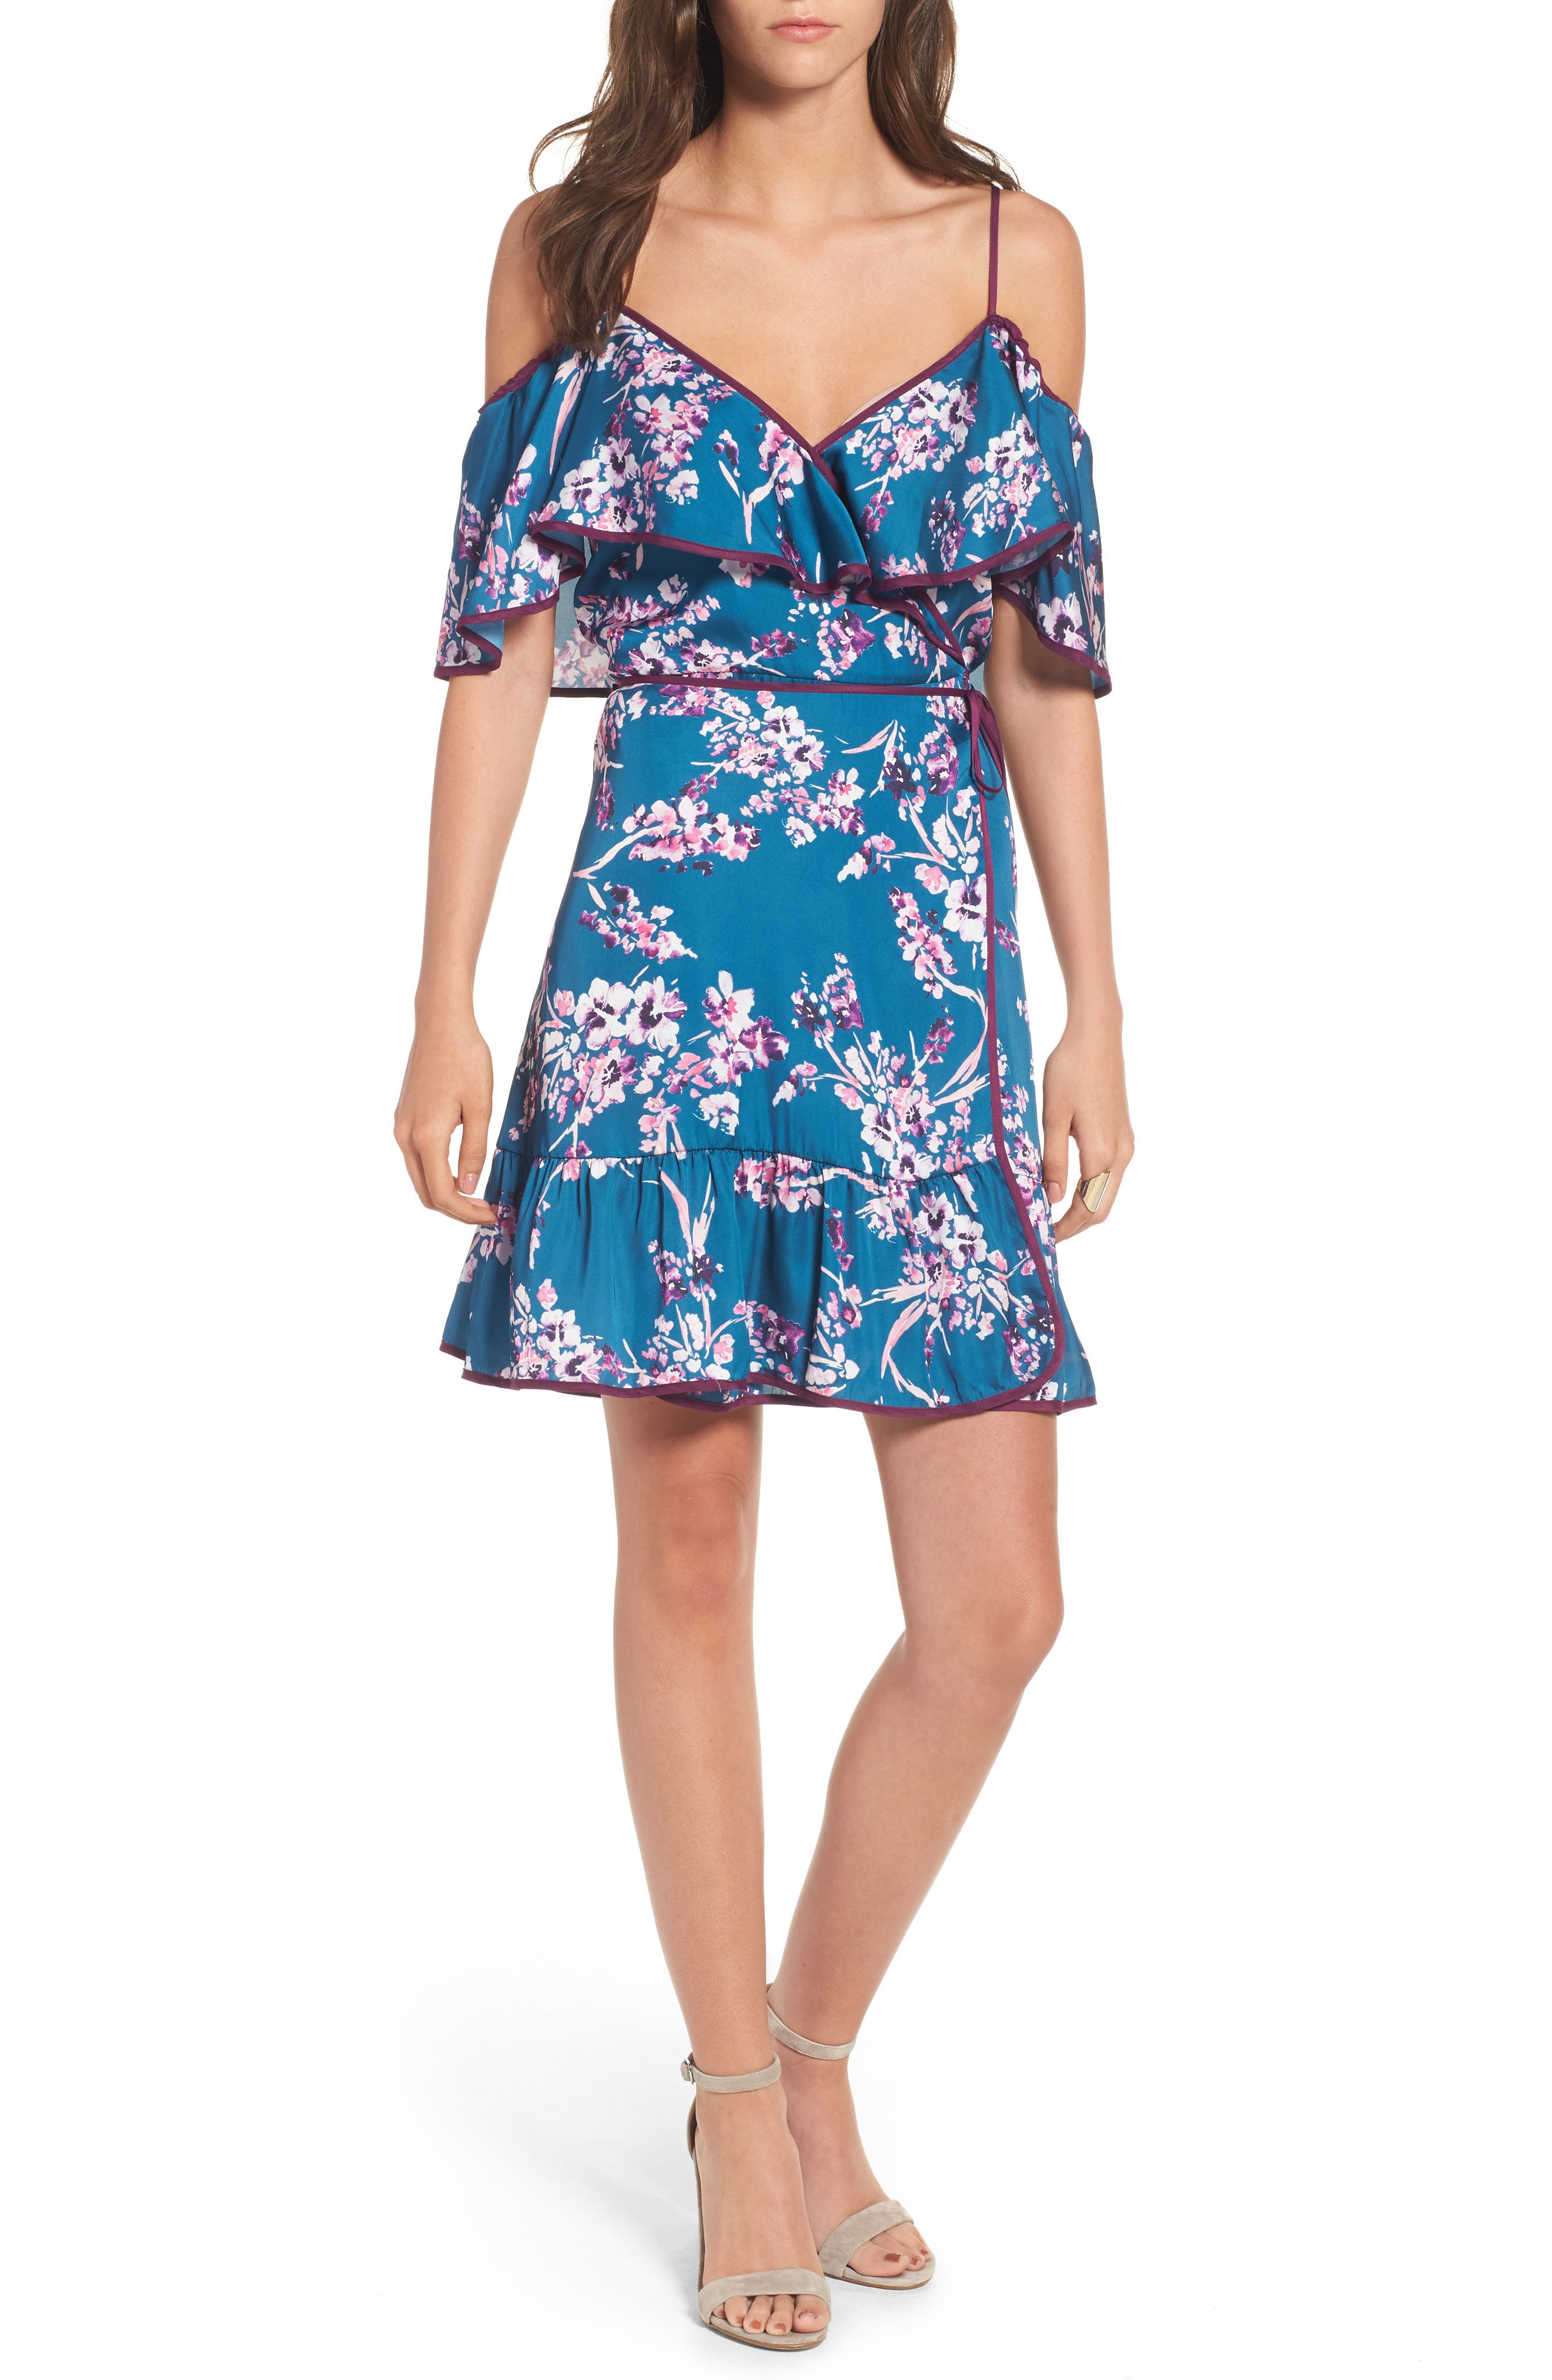 devlin Iris Off the Shoulder Wrap Dress